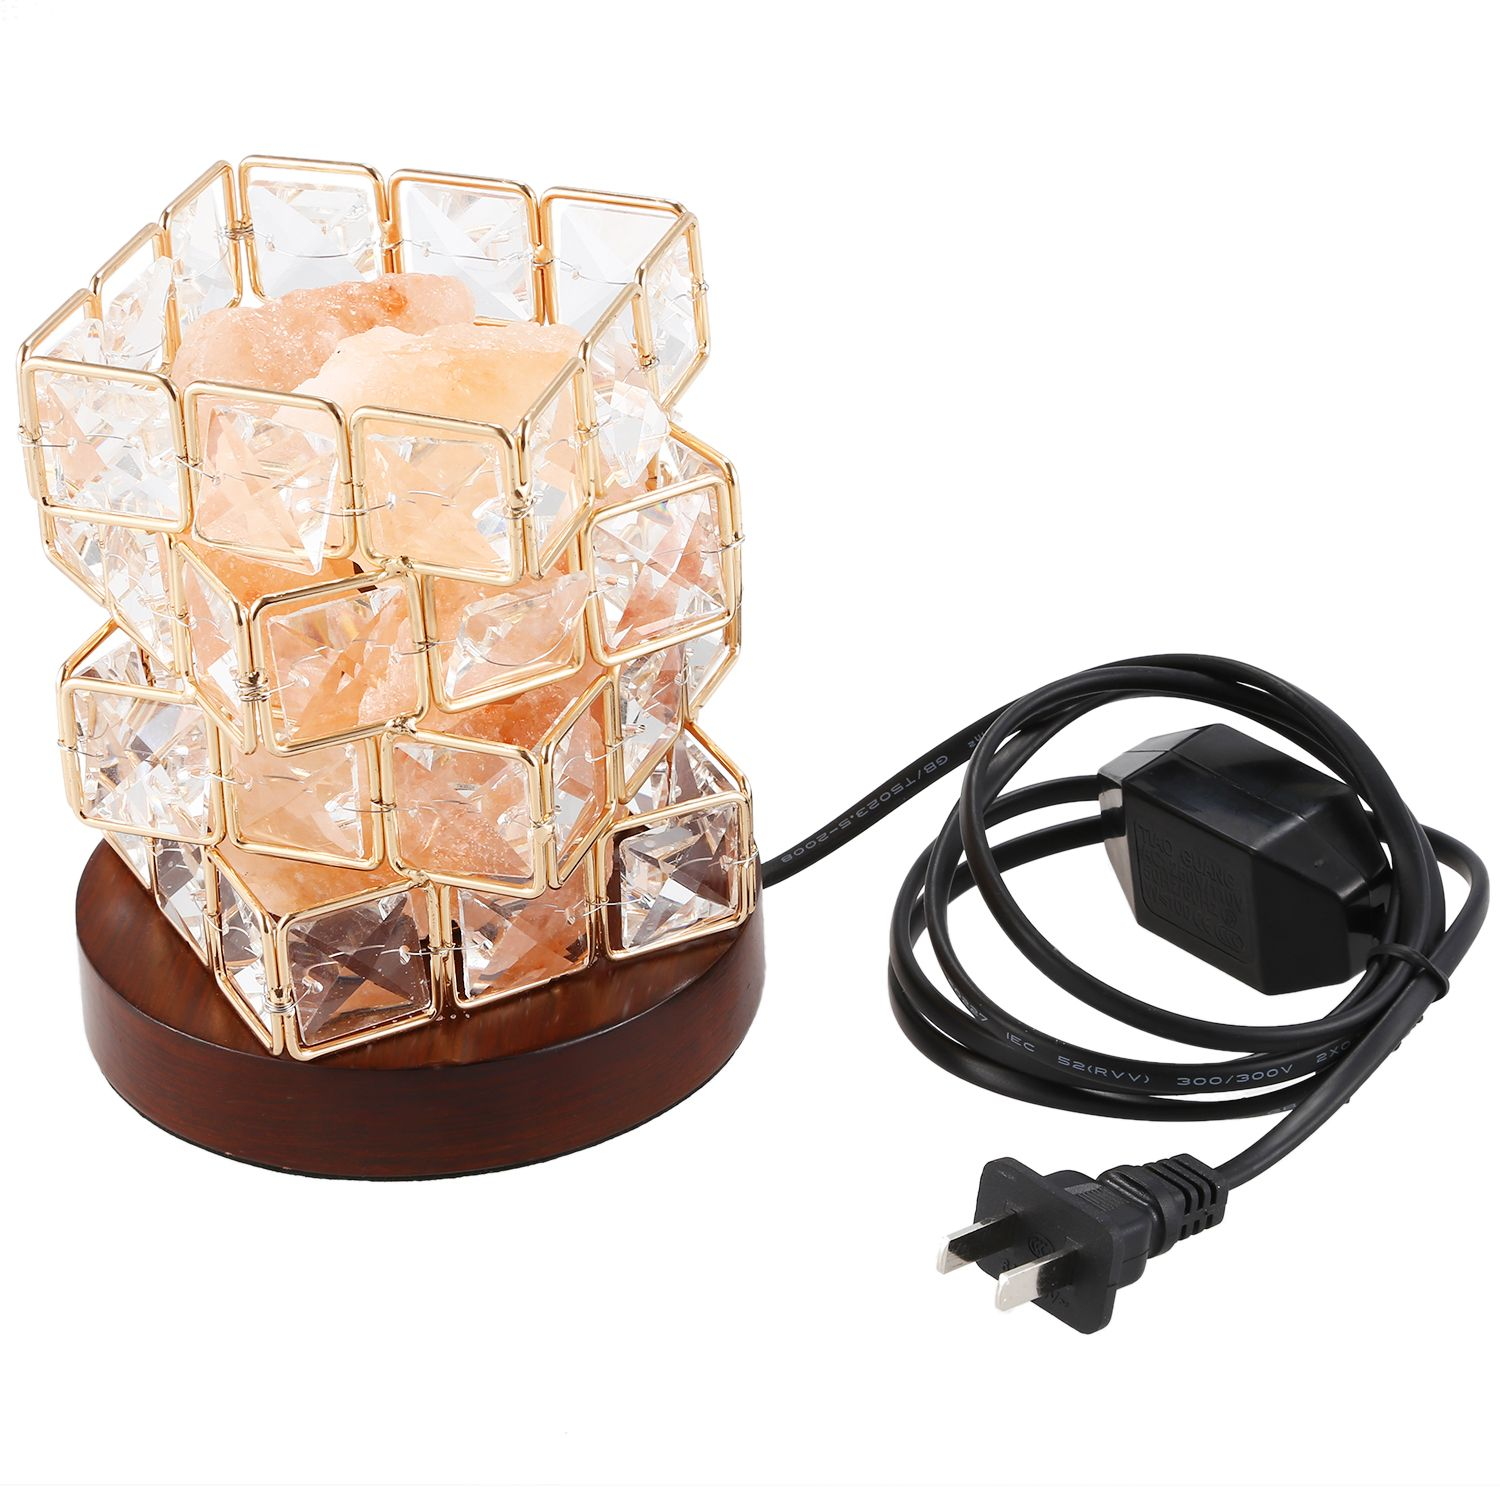 Himalayan Salt Lamp,Natural Hymalain Salt Rock in Crystal Basket with Dimmer Switch,UL-Listed Cord &Wood Base US Plug rakaposhi natural himalayan salt rock lamp with dimmer switch